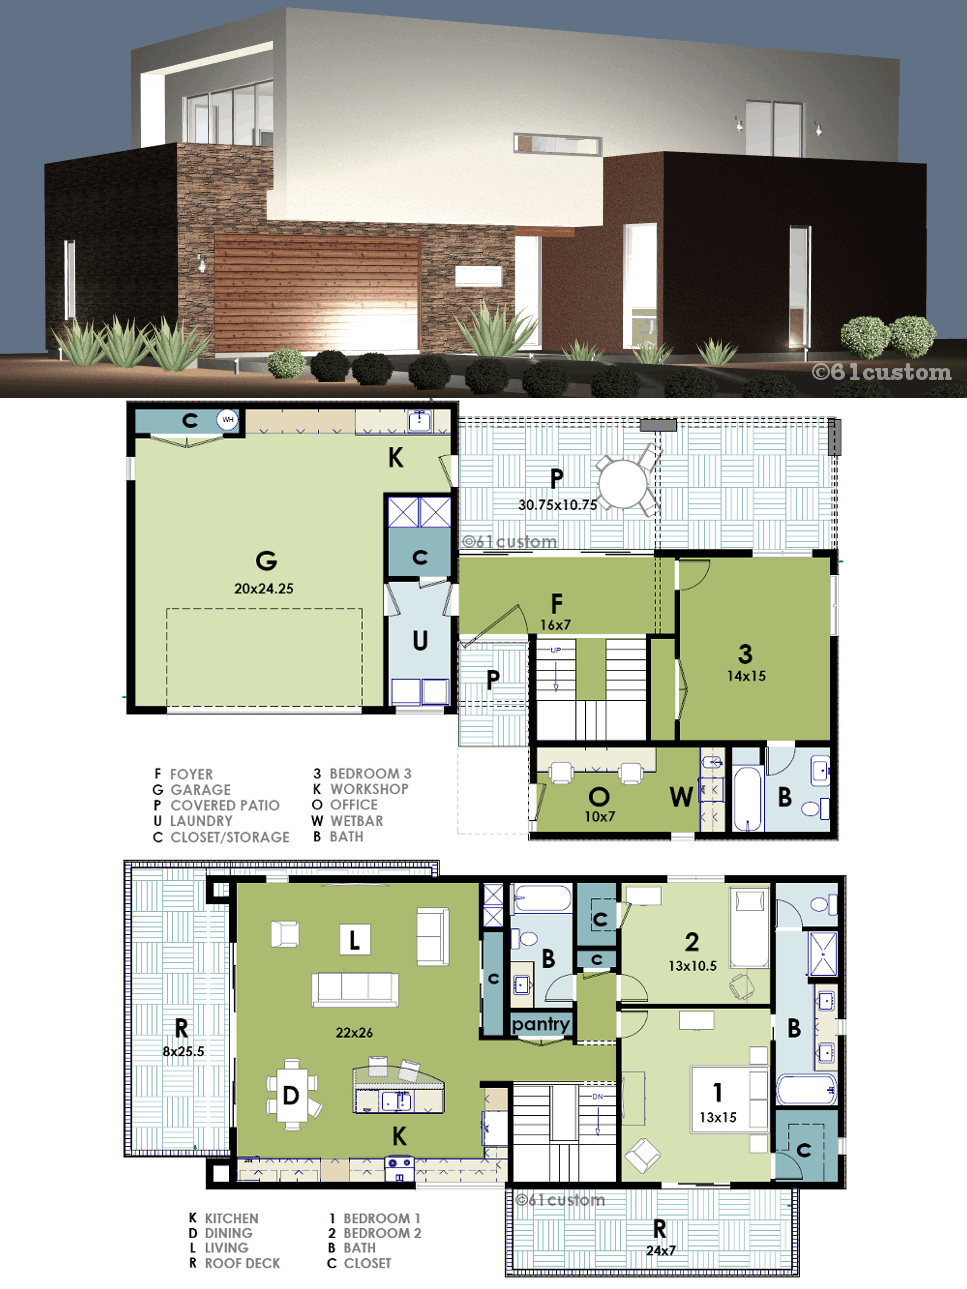 Modern Live Work House Plan 61custom Modern House